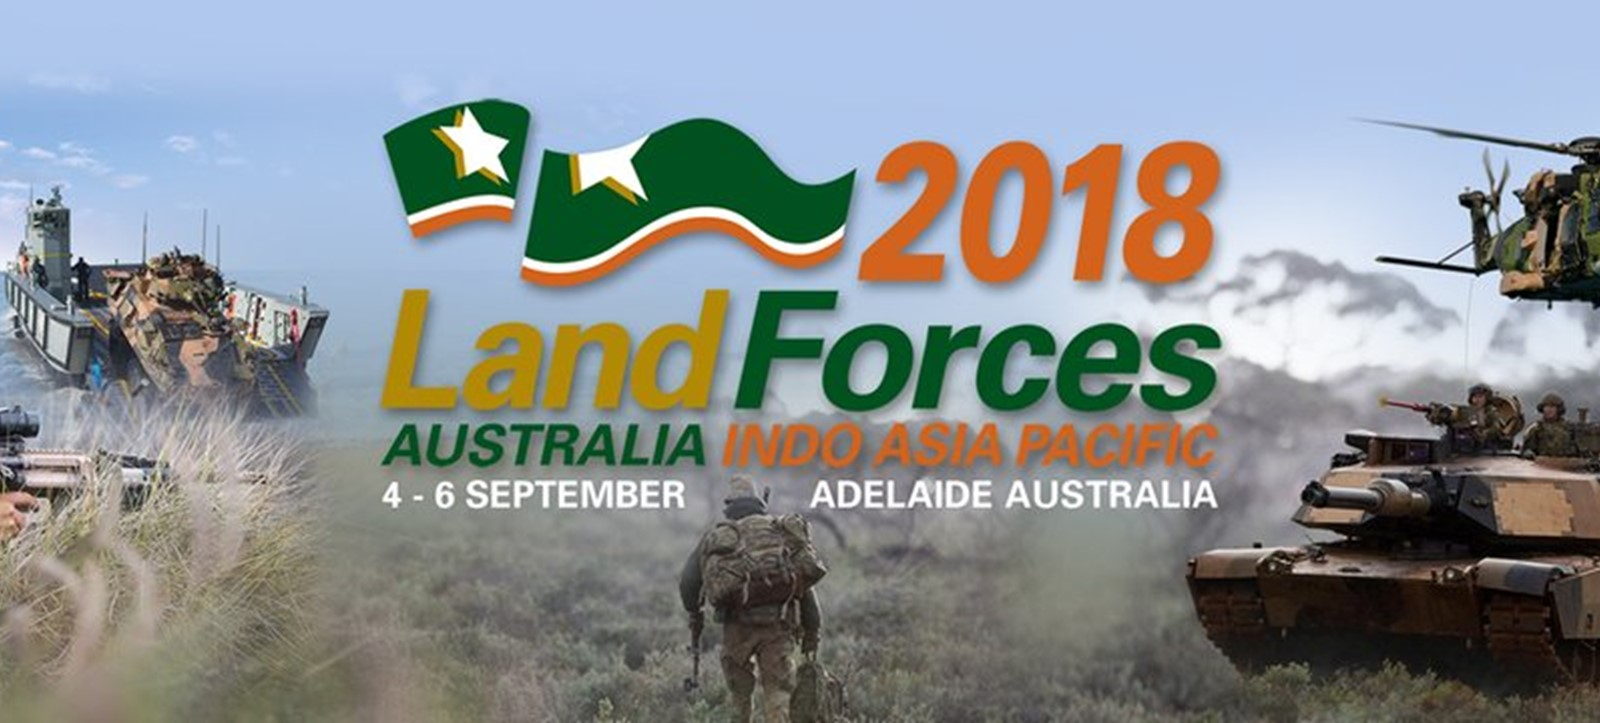 Maser at LandForces 2018